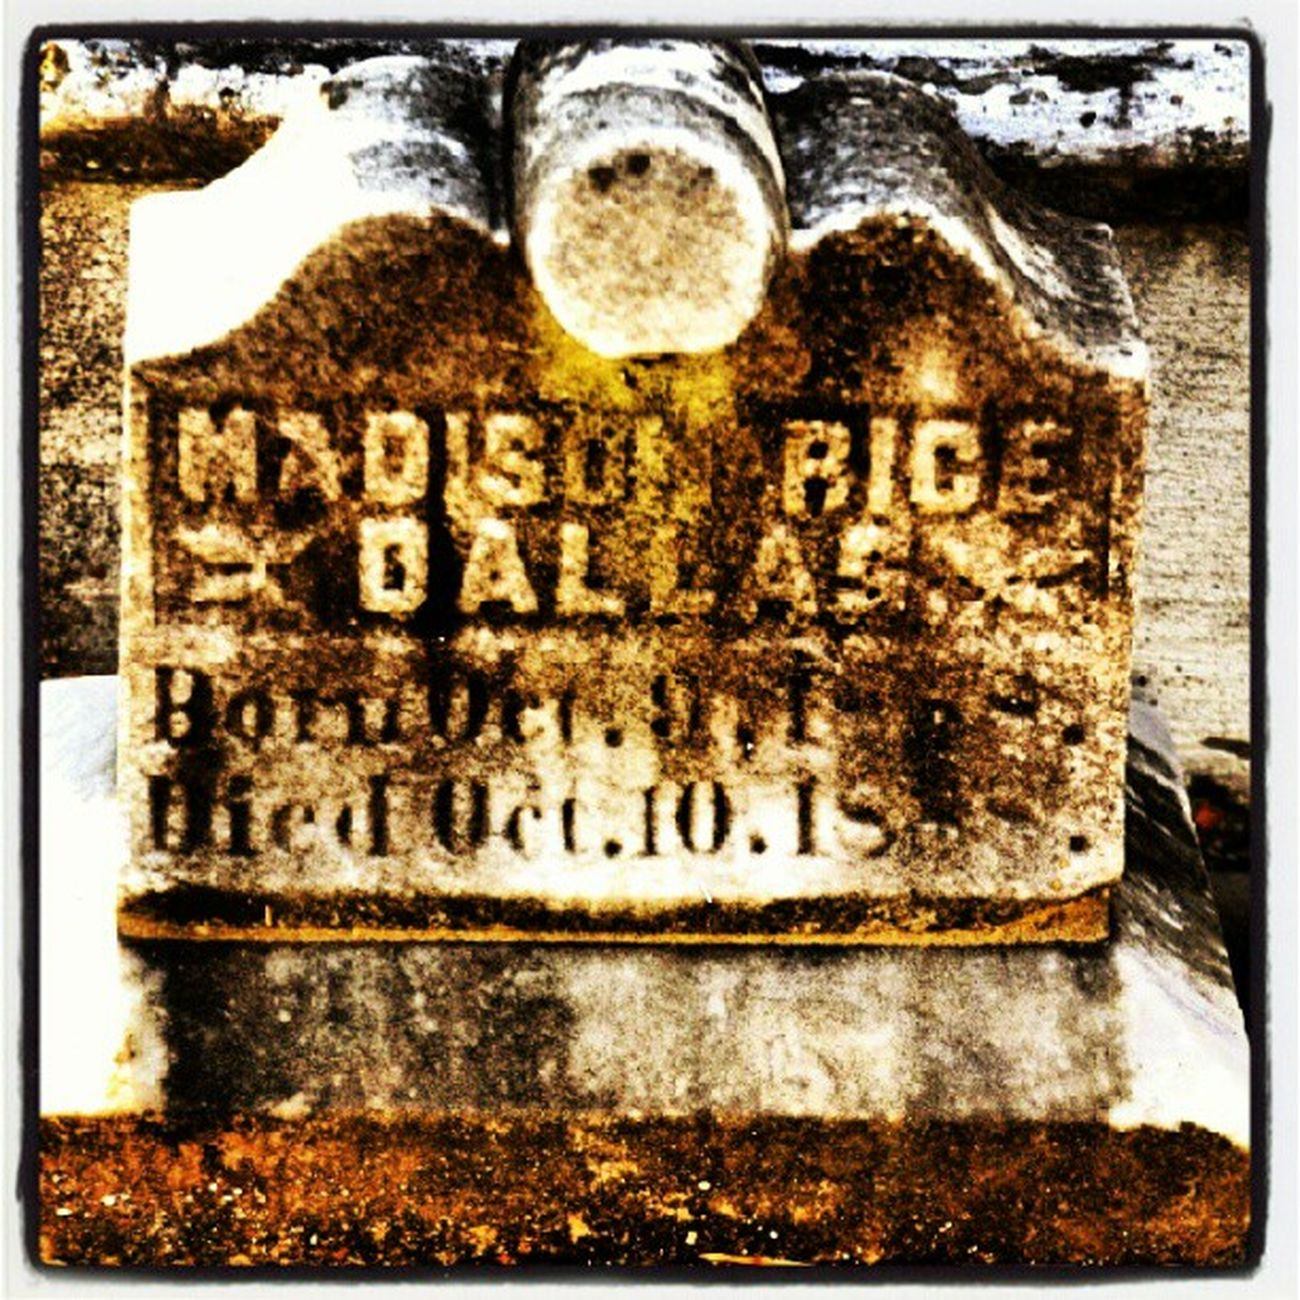 Baby Rice. #grief #grave #cemetery #nola #neworleans #mausoleum #marble #children #grave #instagram #picoftheday #saveourcemeteries #statue #tomb #tombstone #weeping #webstagram Marble Grave NOLA Tomb Webstagram Neworleans Saveourcemeteries Weeping Statue Children Cemetery Grief Instagram Mausoleum Tombstone Picoftheday